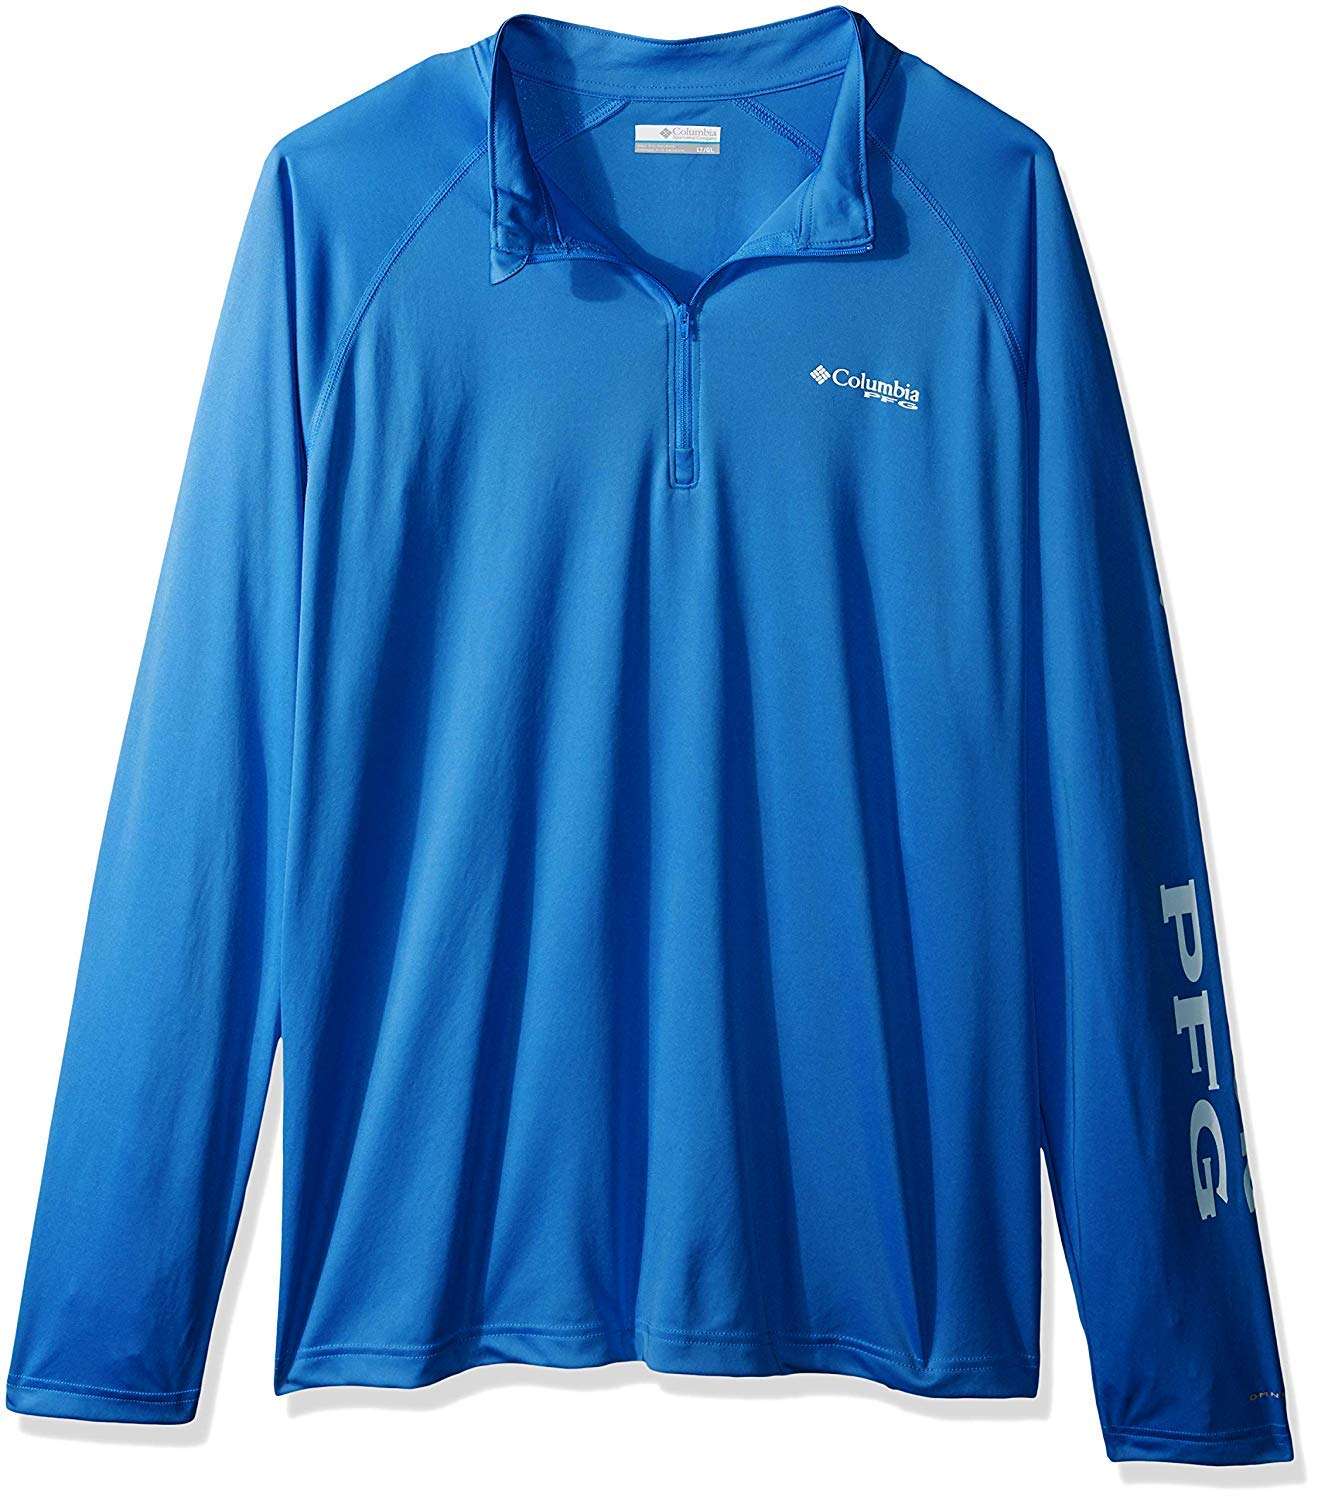 Columbia Men's Terminal Tackle 1/4 Zip Collegiate Navy, Sunset Red 4X by Columbia